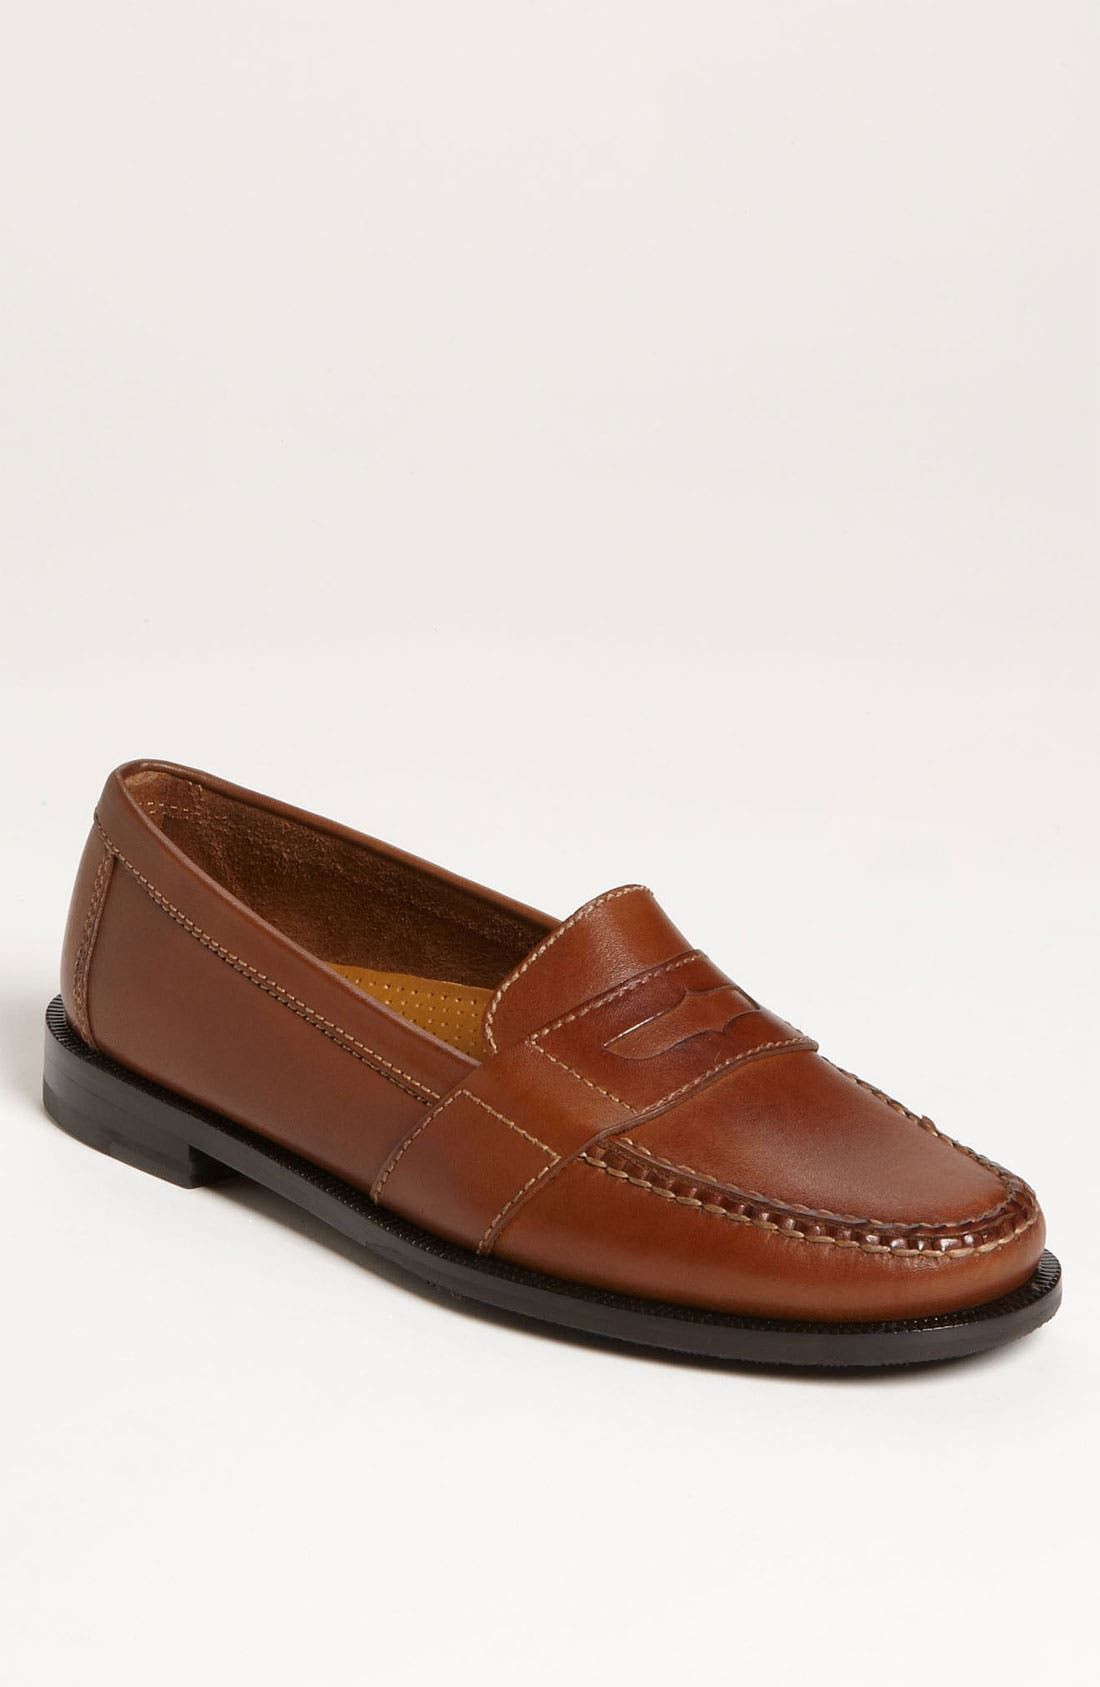 Main Image - Cole Haan 'Douglas' Loafer (Online Only)   (Men)